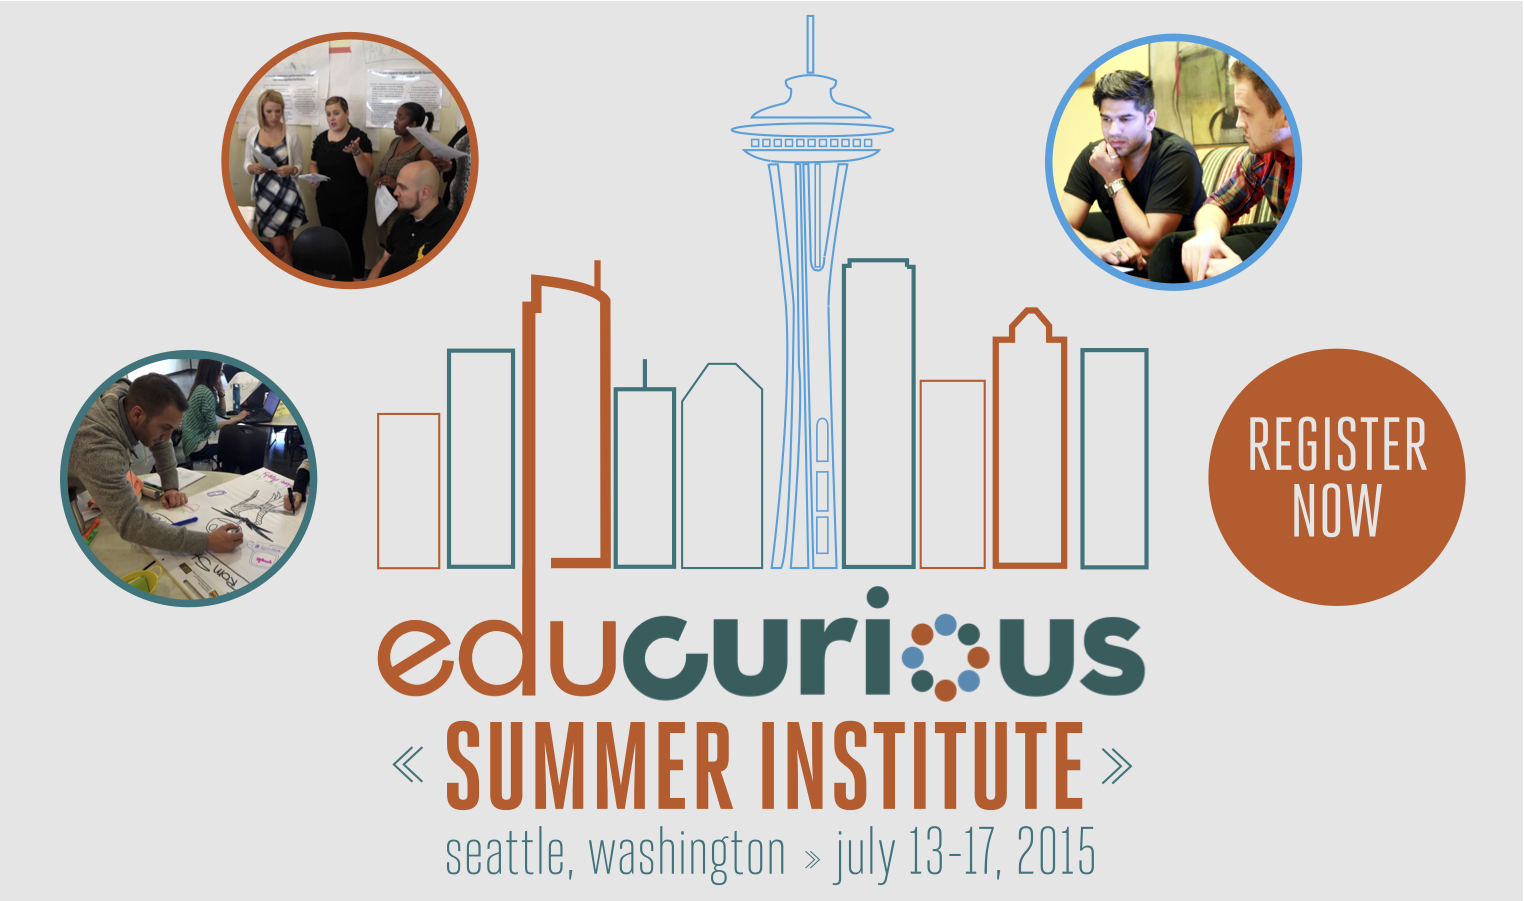 Educurious Summer Institute 2015